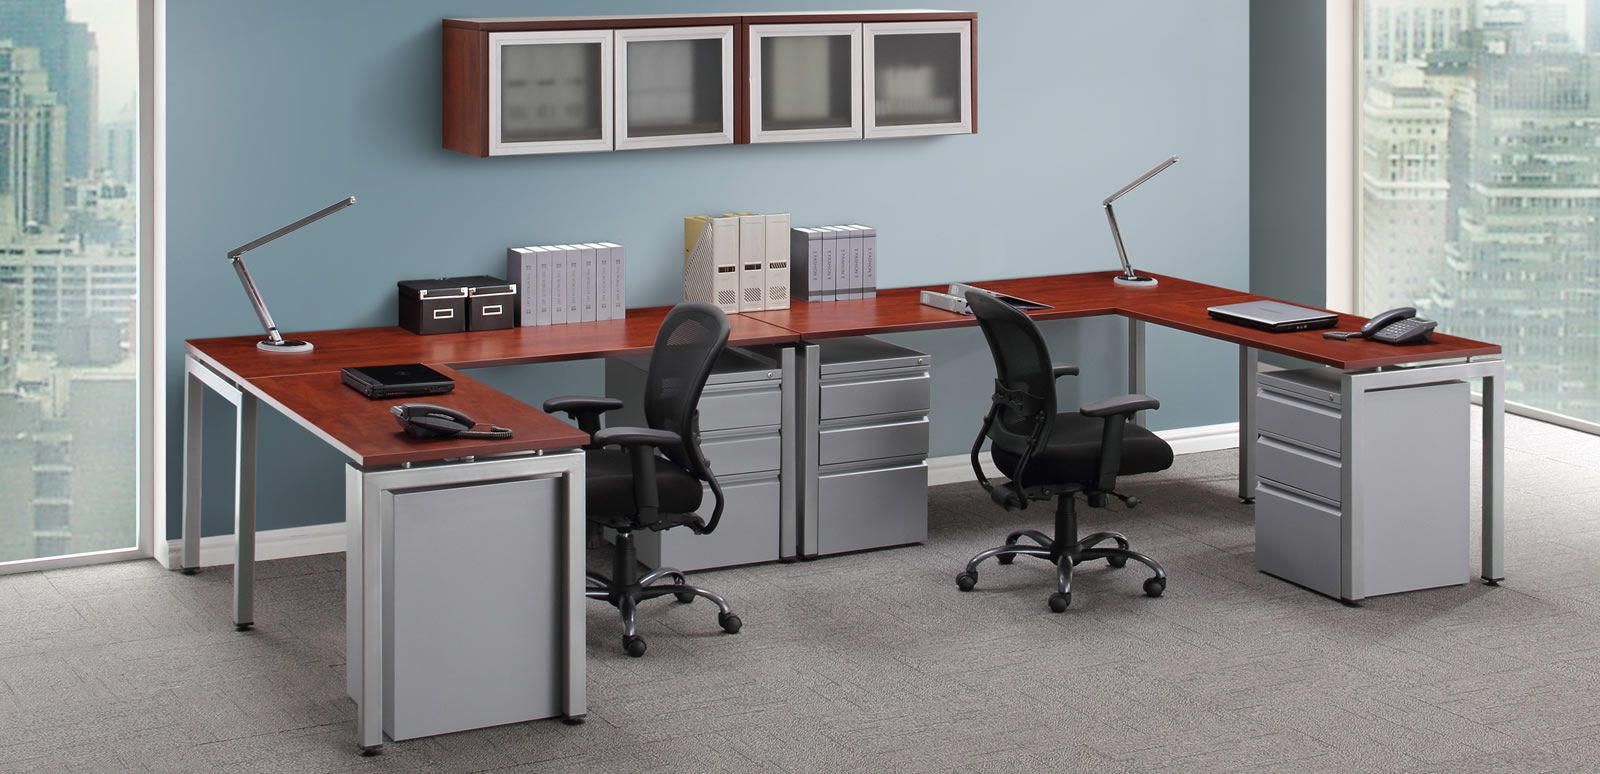 Büromöbel Office Furniture Edmonton | BüroMöbel | Pinterest | Office ...